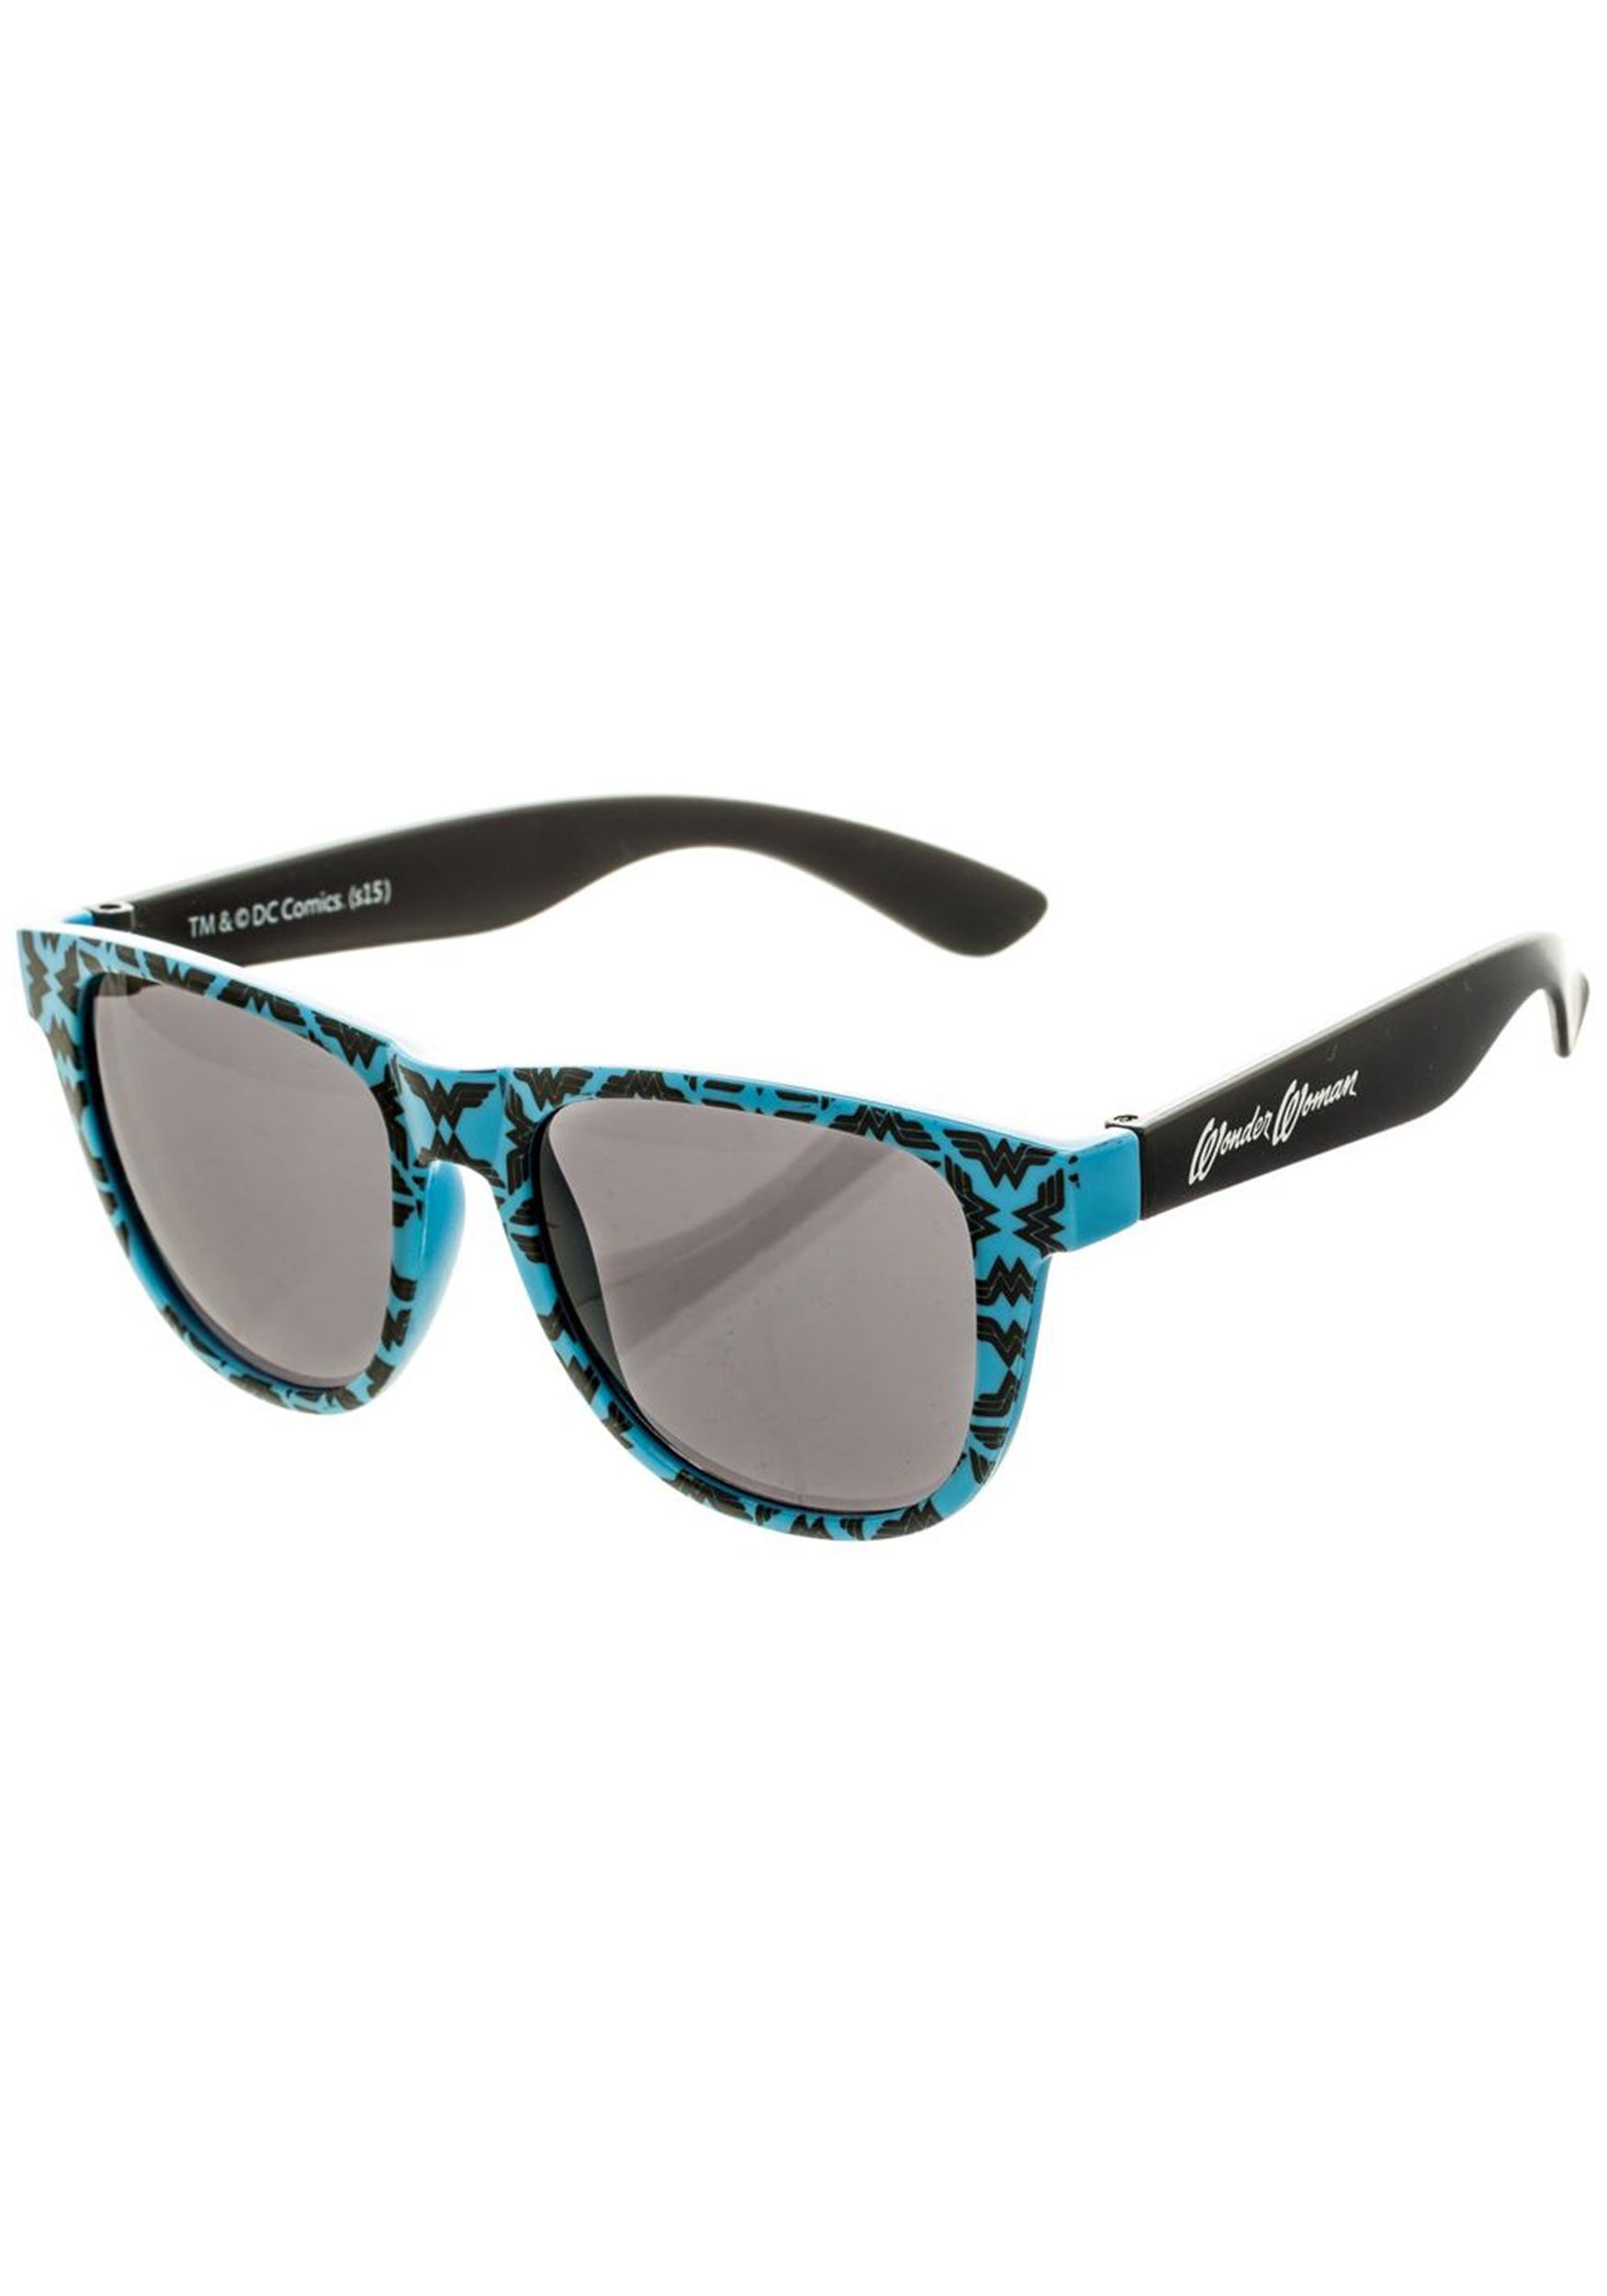 Wonder Woman Sunglasses  wonder woman patterned sunglasses from dc comics